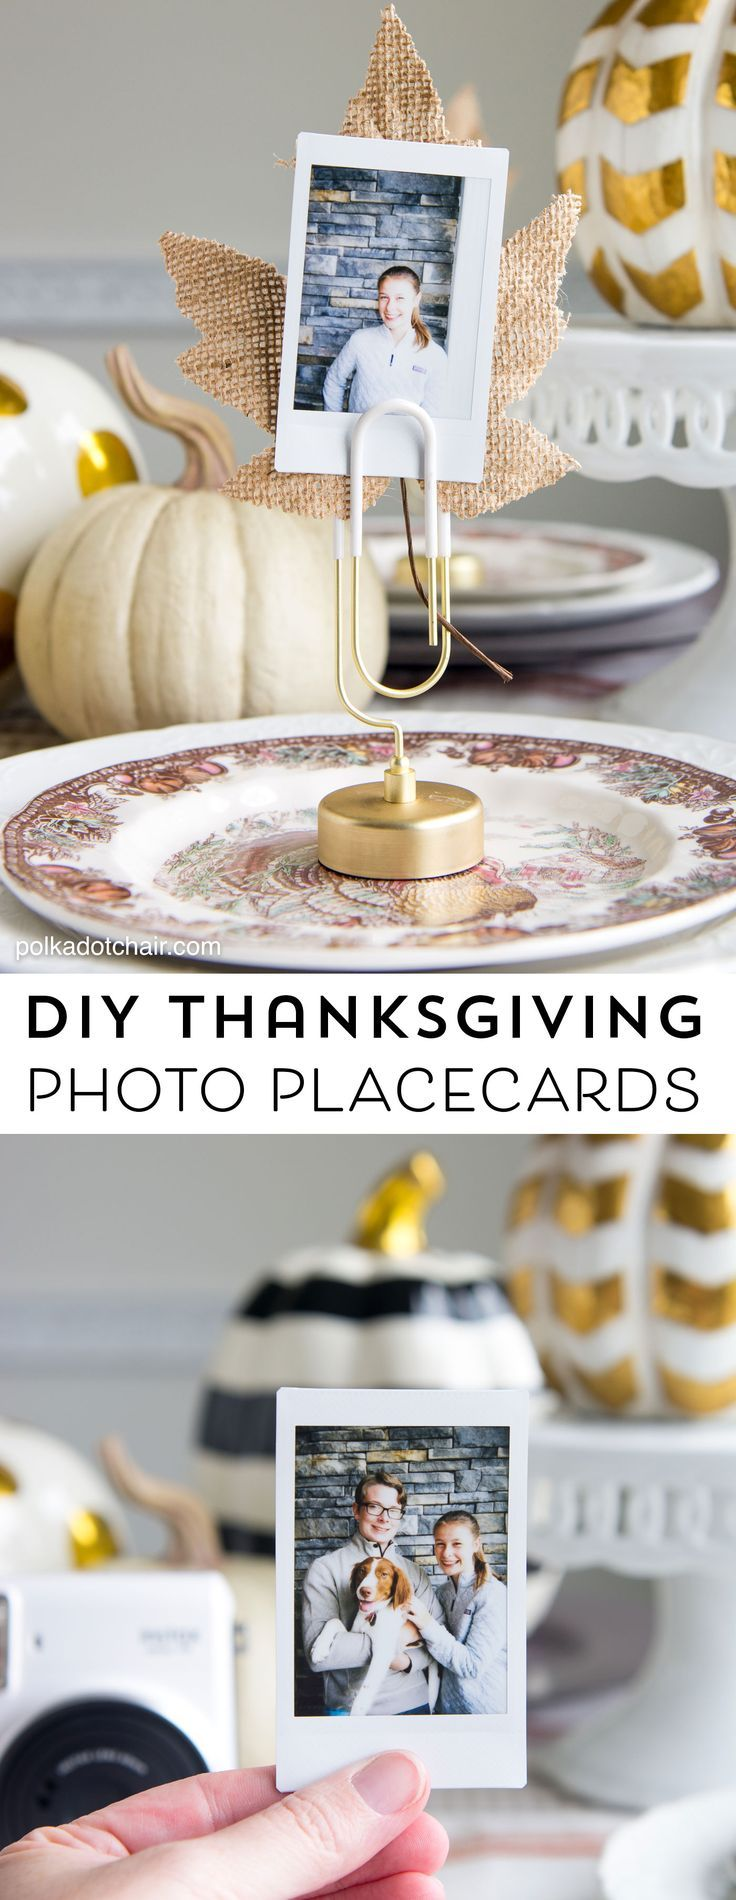 Cute idea for Thanksgiving Place Cards- DIY Photo place cards using Instax photo...